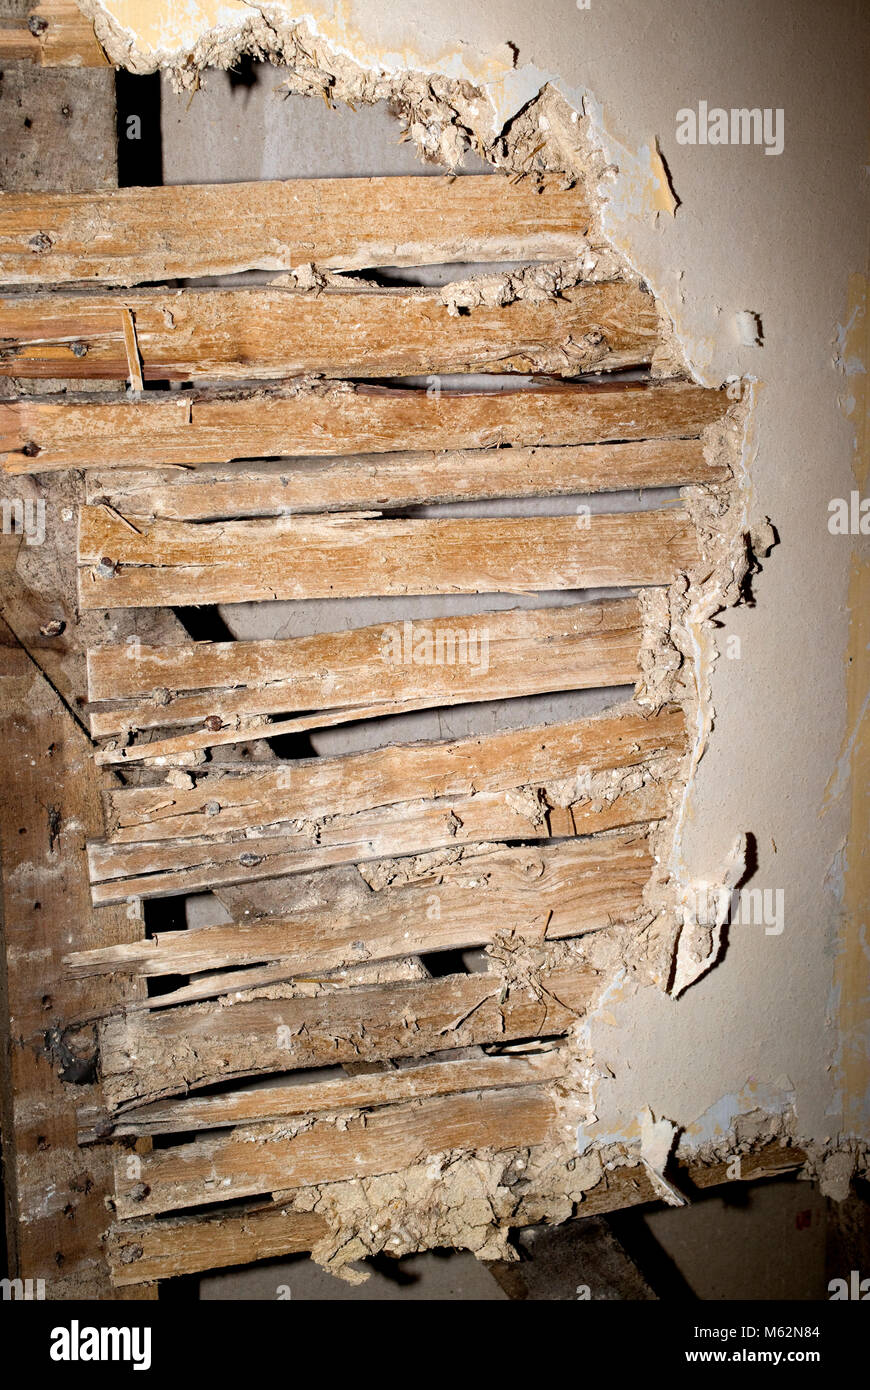 Lath And Plaster High Resolution Stock Photography and Images - Alamy